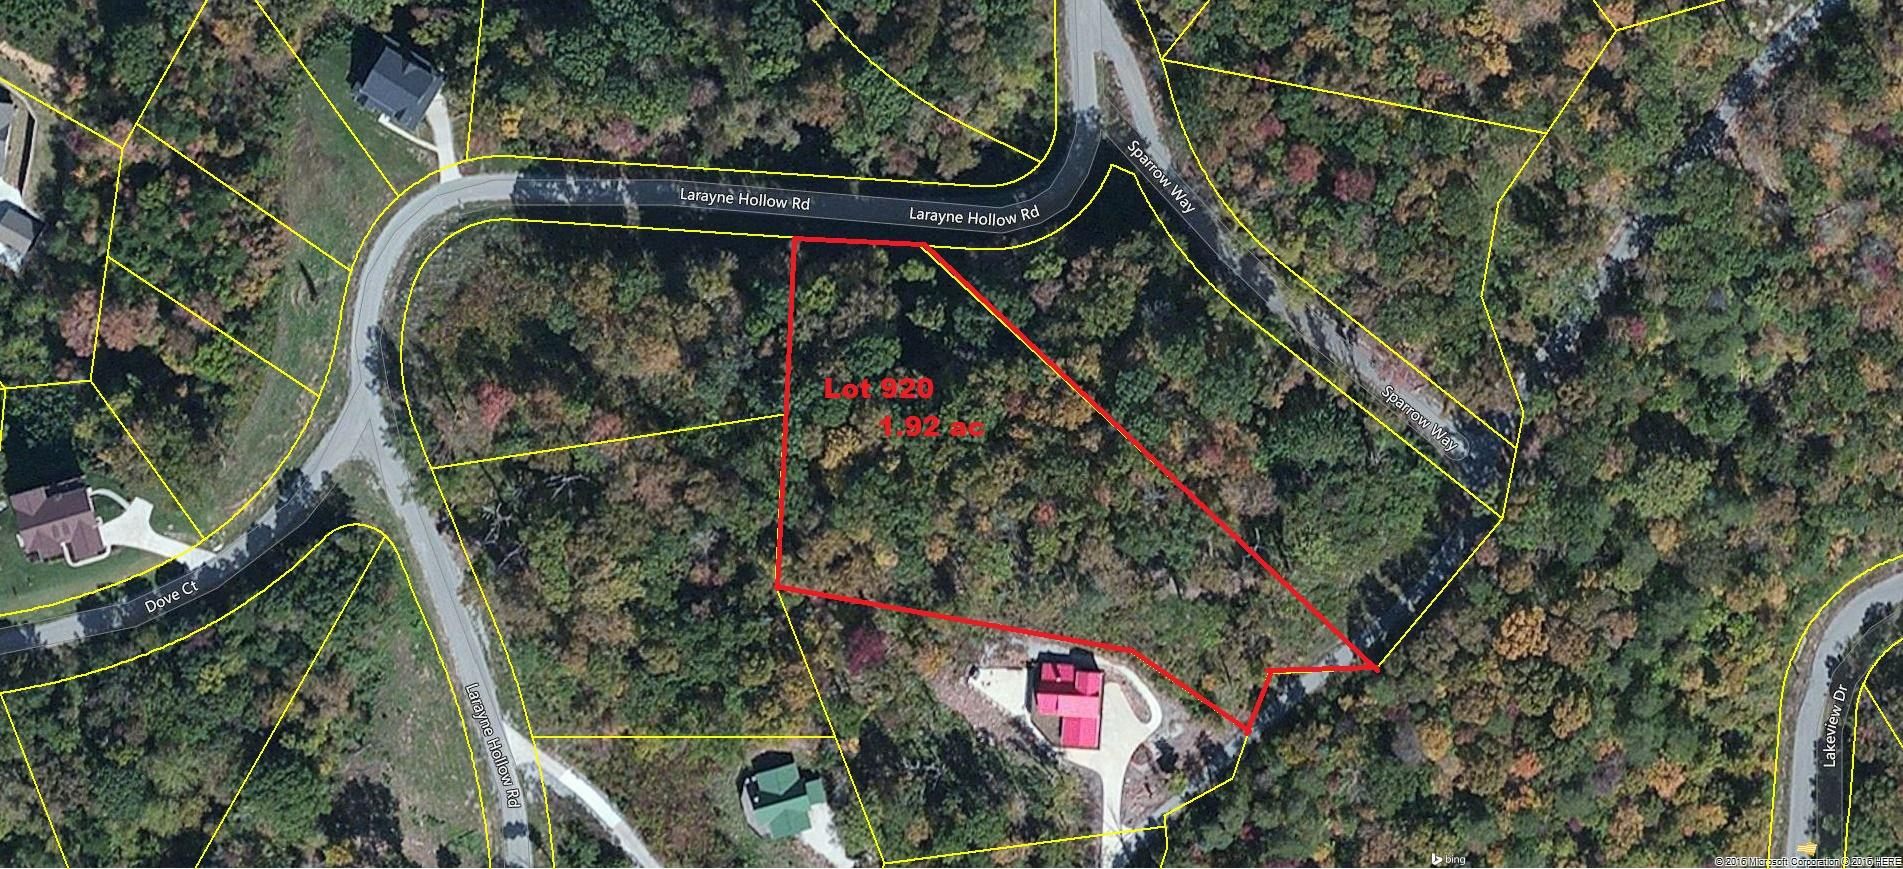 Lot 920 Larayne Hollow Sunset Bay, Sharps Chapel, Tennessee 37866, ,Lots & Acreage,For Sale,Larayne Hollow Sunset Bay,981665